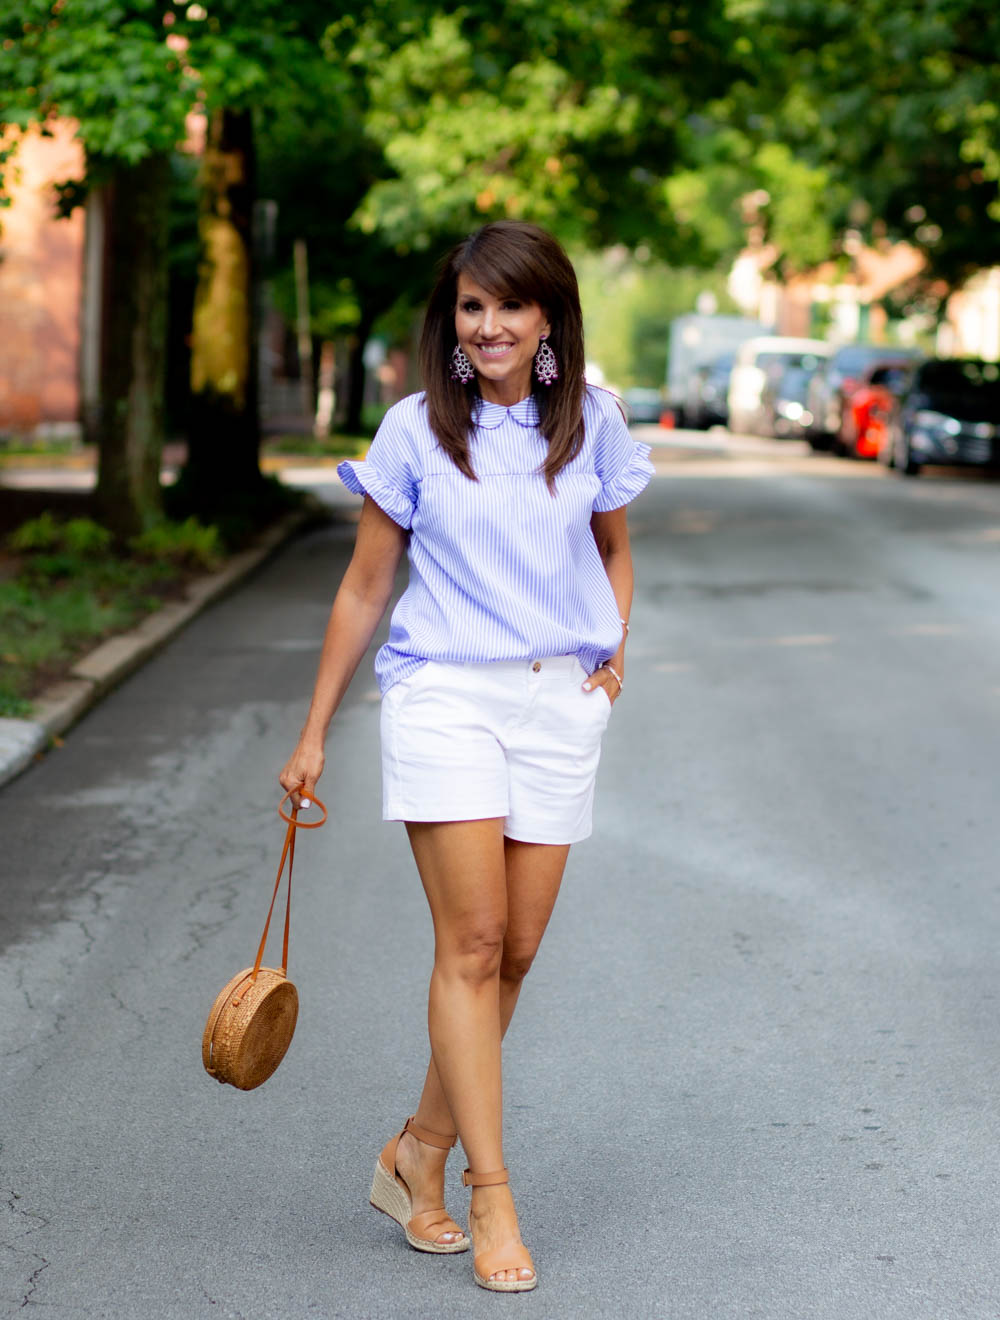 Blue and White Fashion for Summer